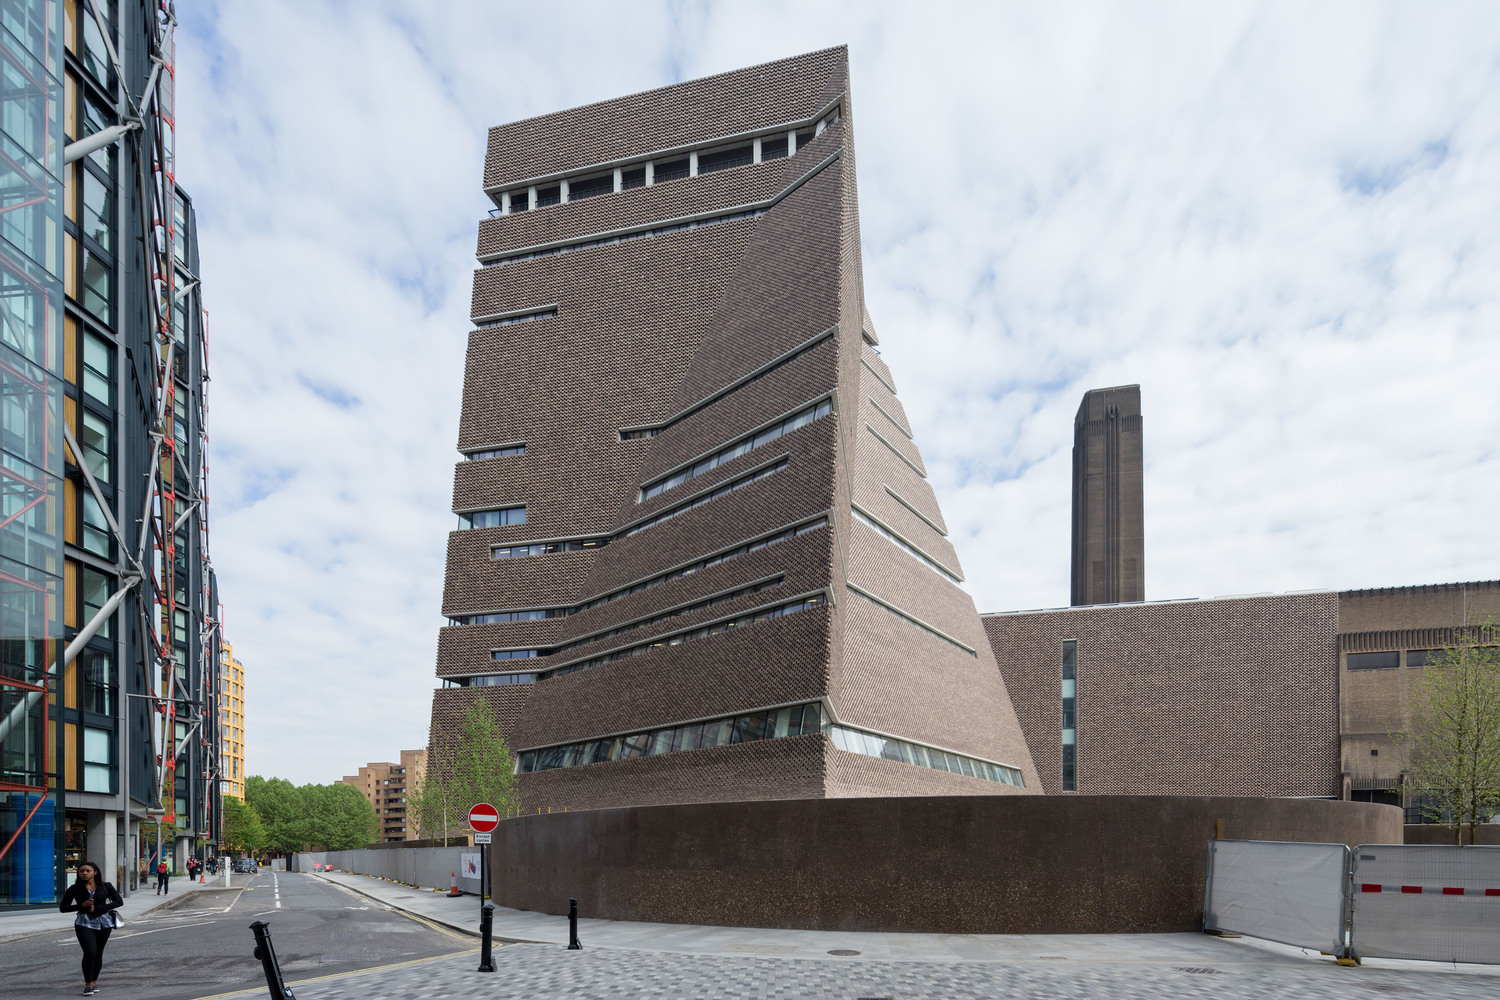 Tate Modern Switch House/Foto: Iwan Baan